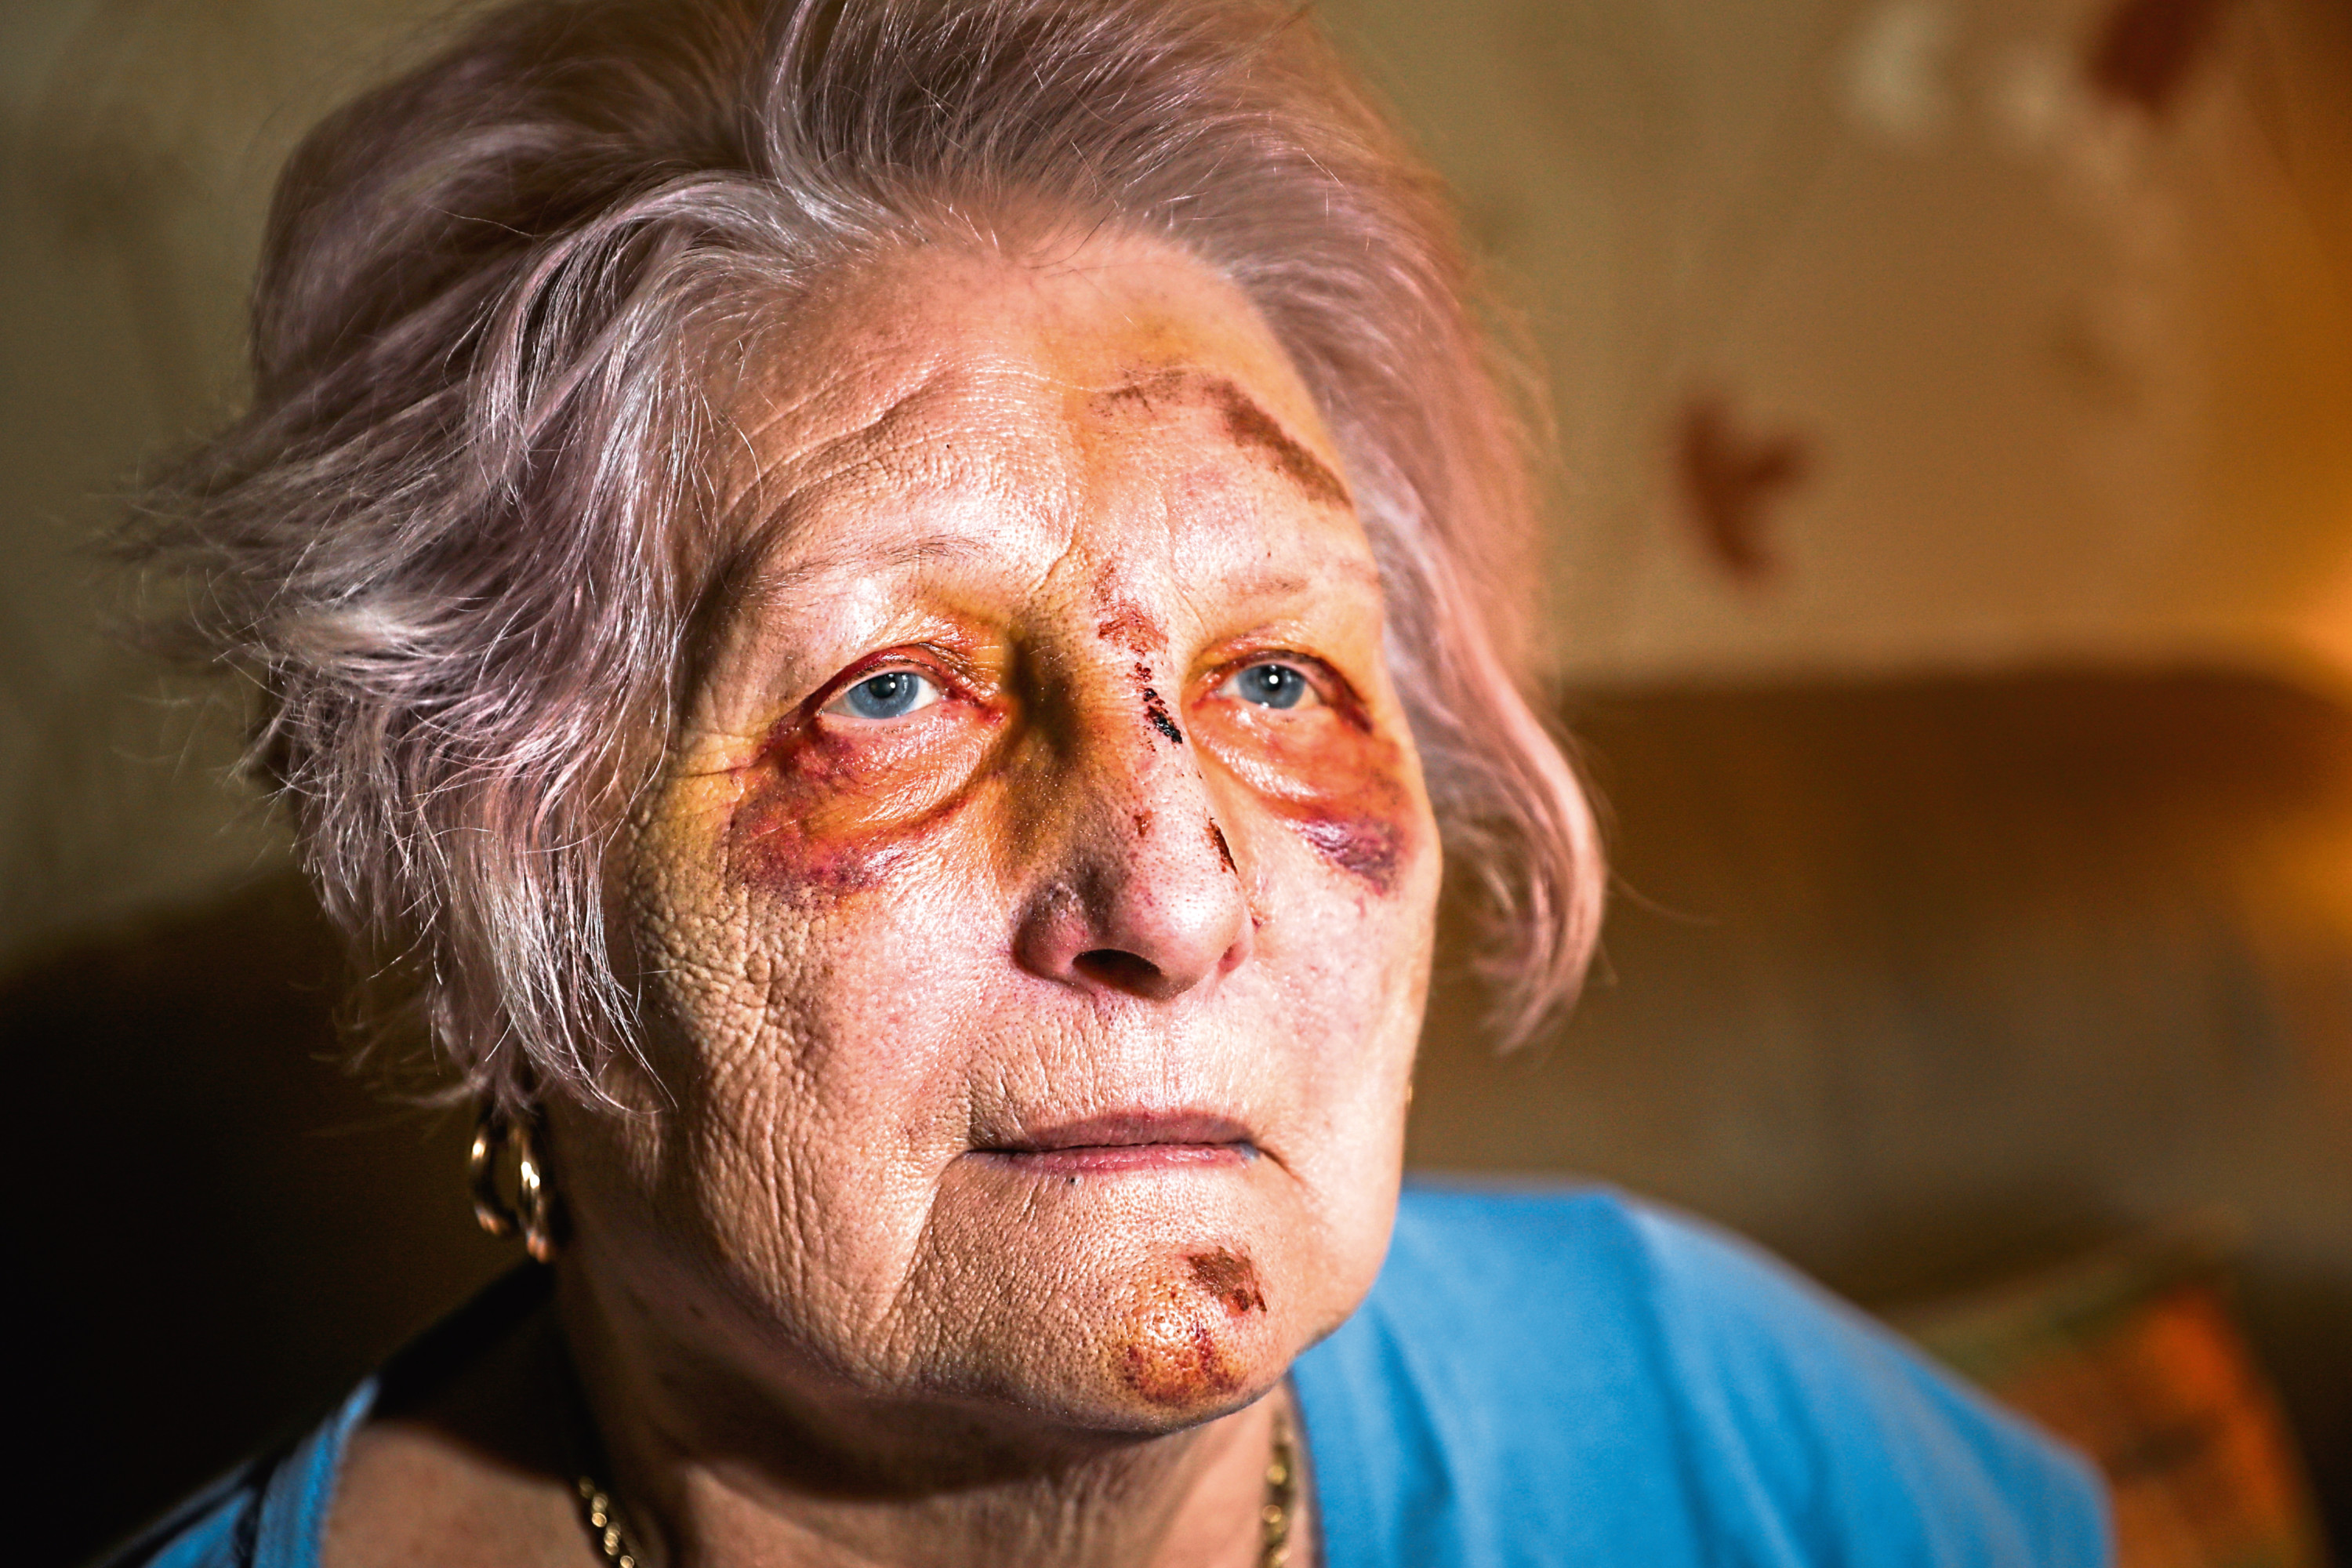 Brenda's face was left badly bruised.